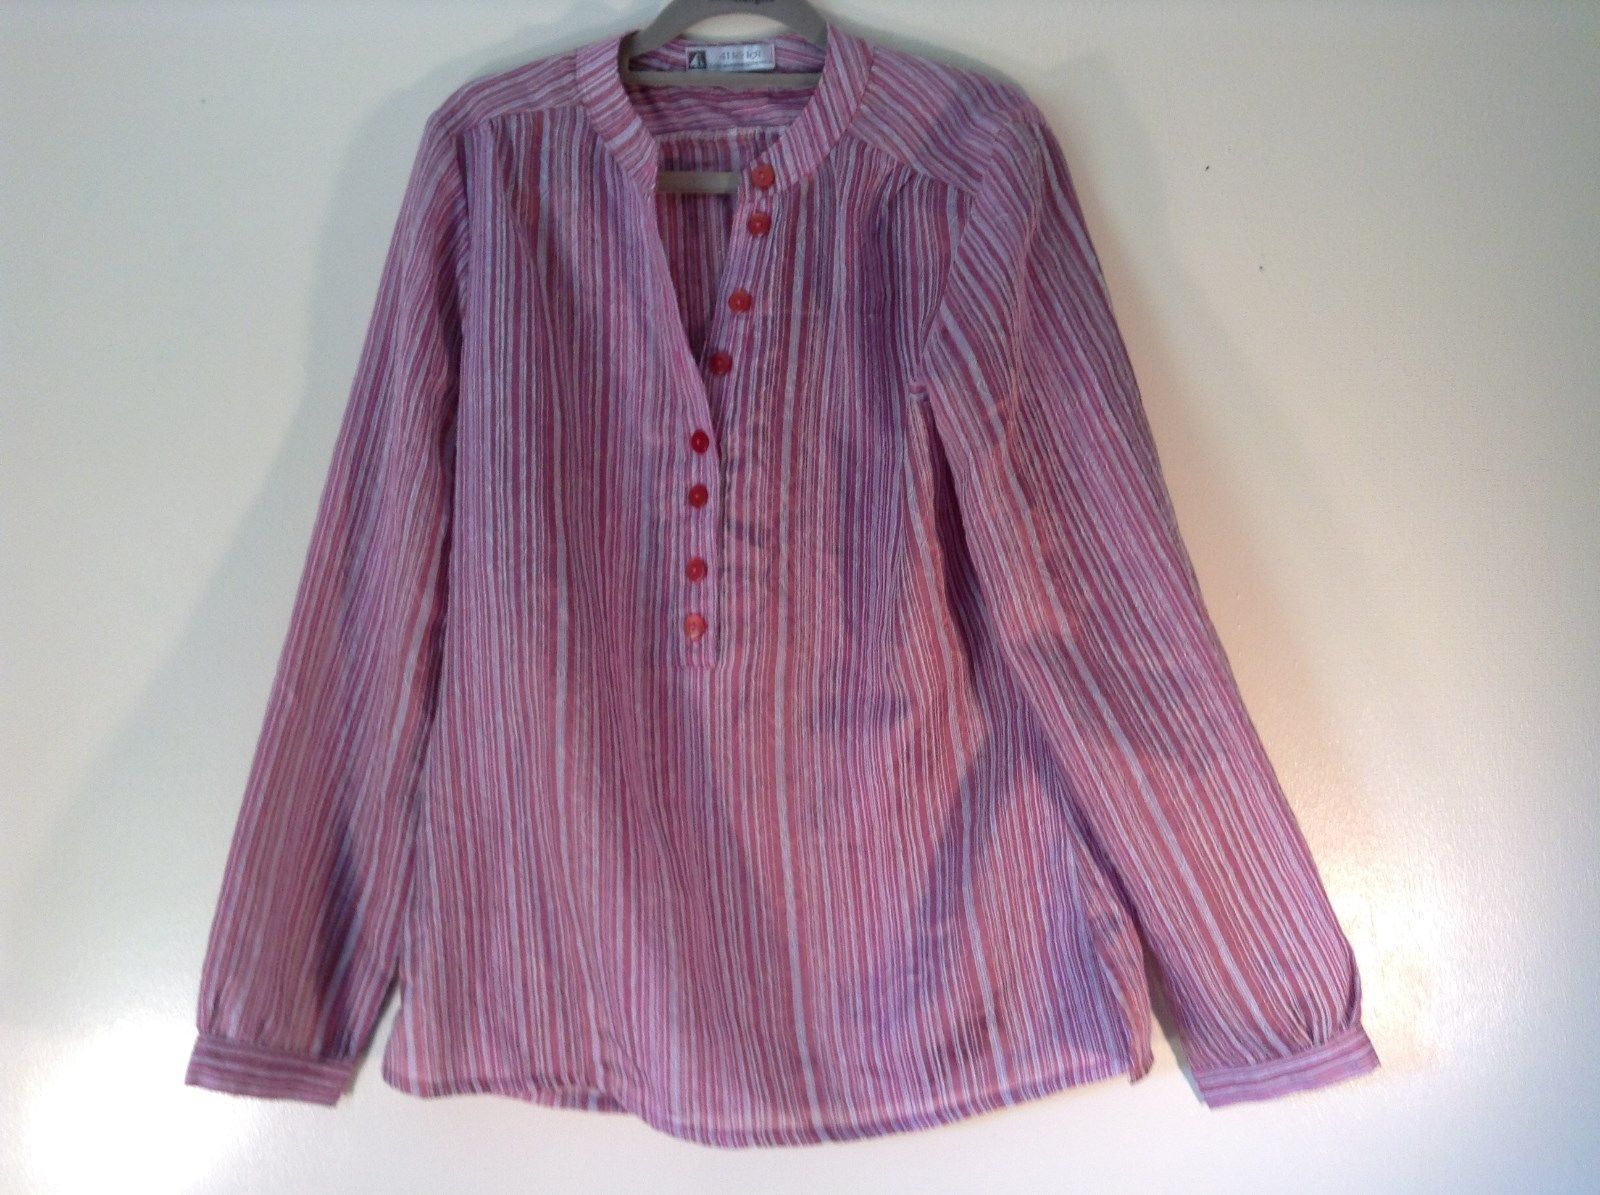 41 Le Loi Long Sleeve Striped Rose Shirt Light Semi Transparent Fabric